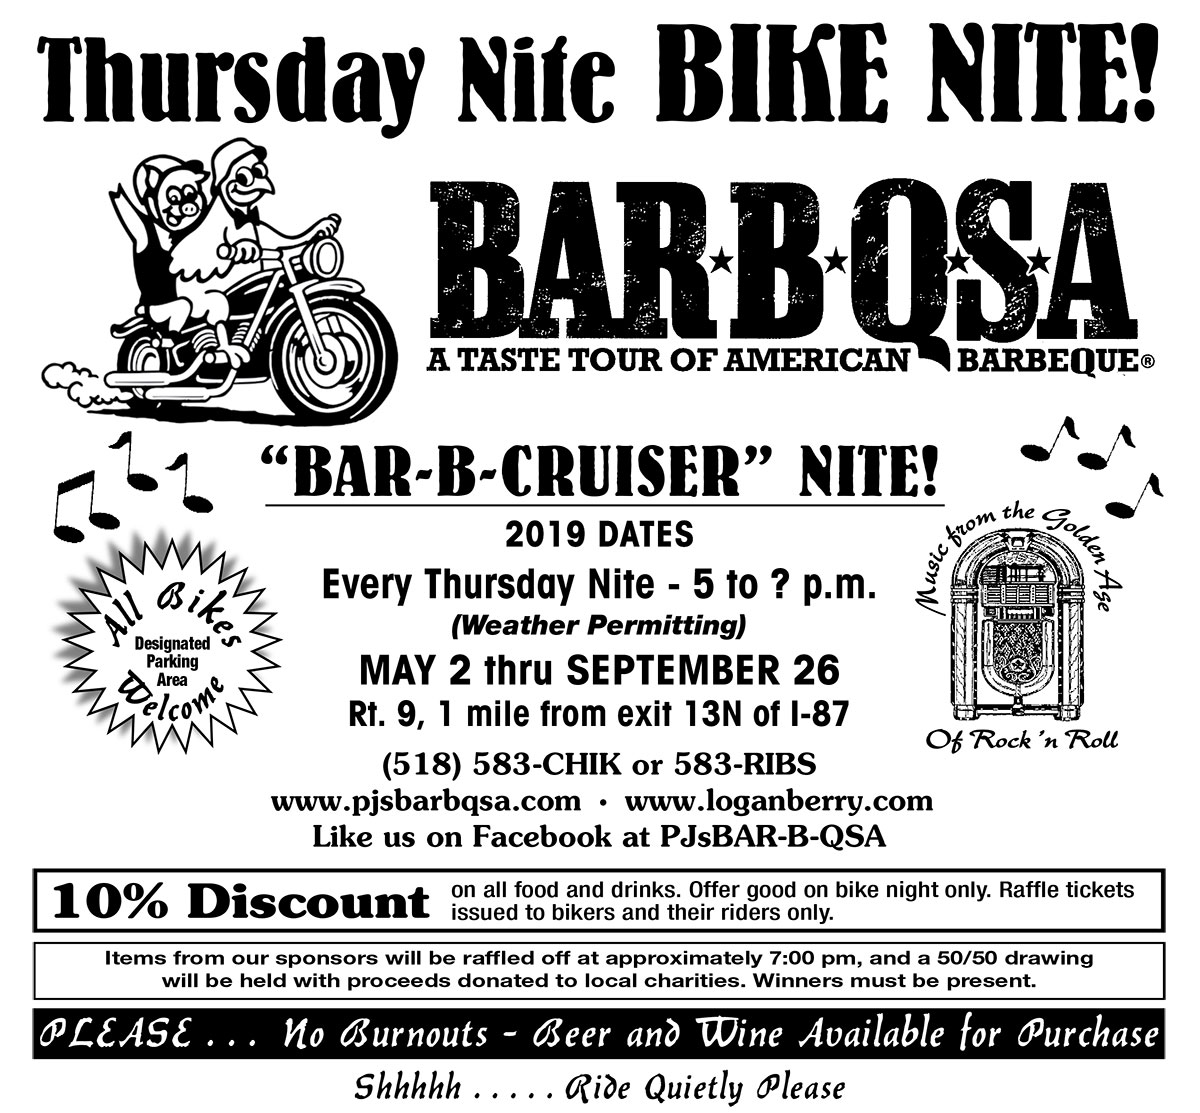 317384f5cfc Bike Night - PJ's BAR-B-QSA